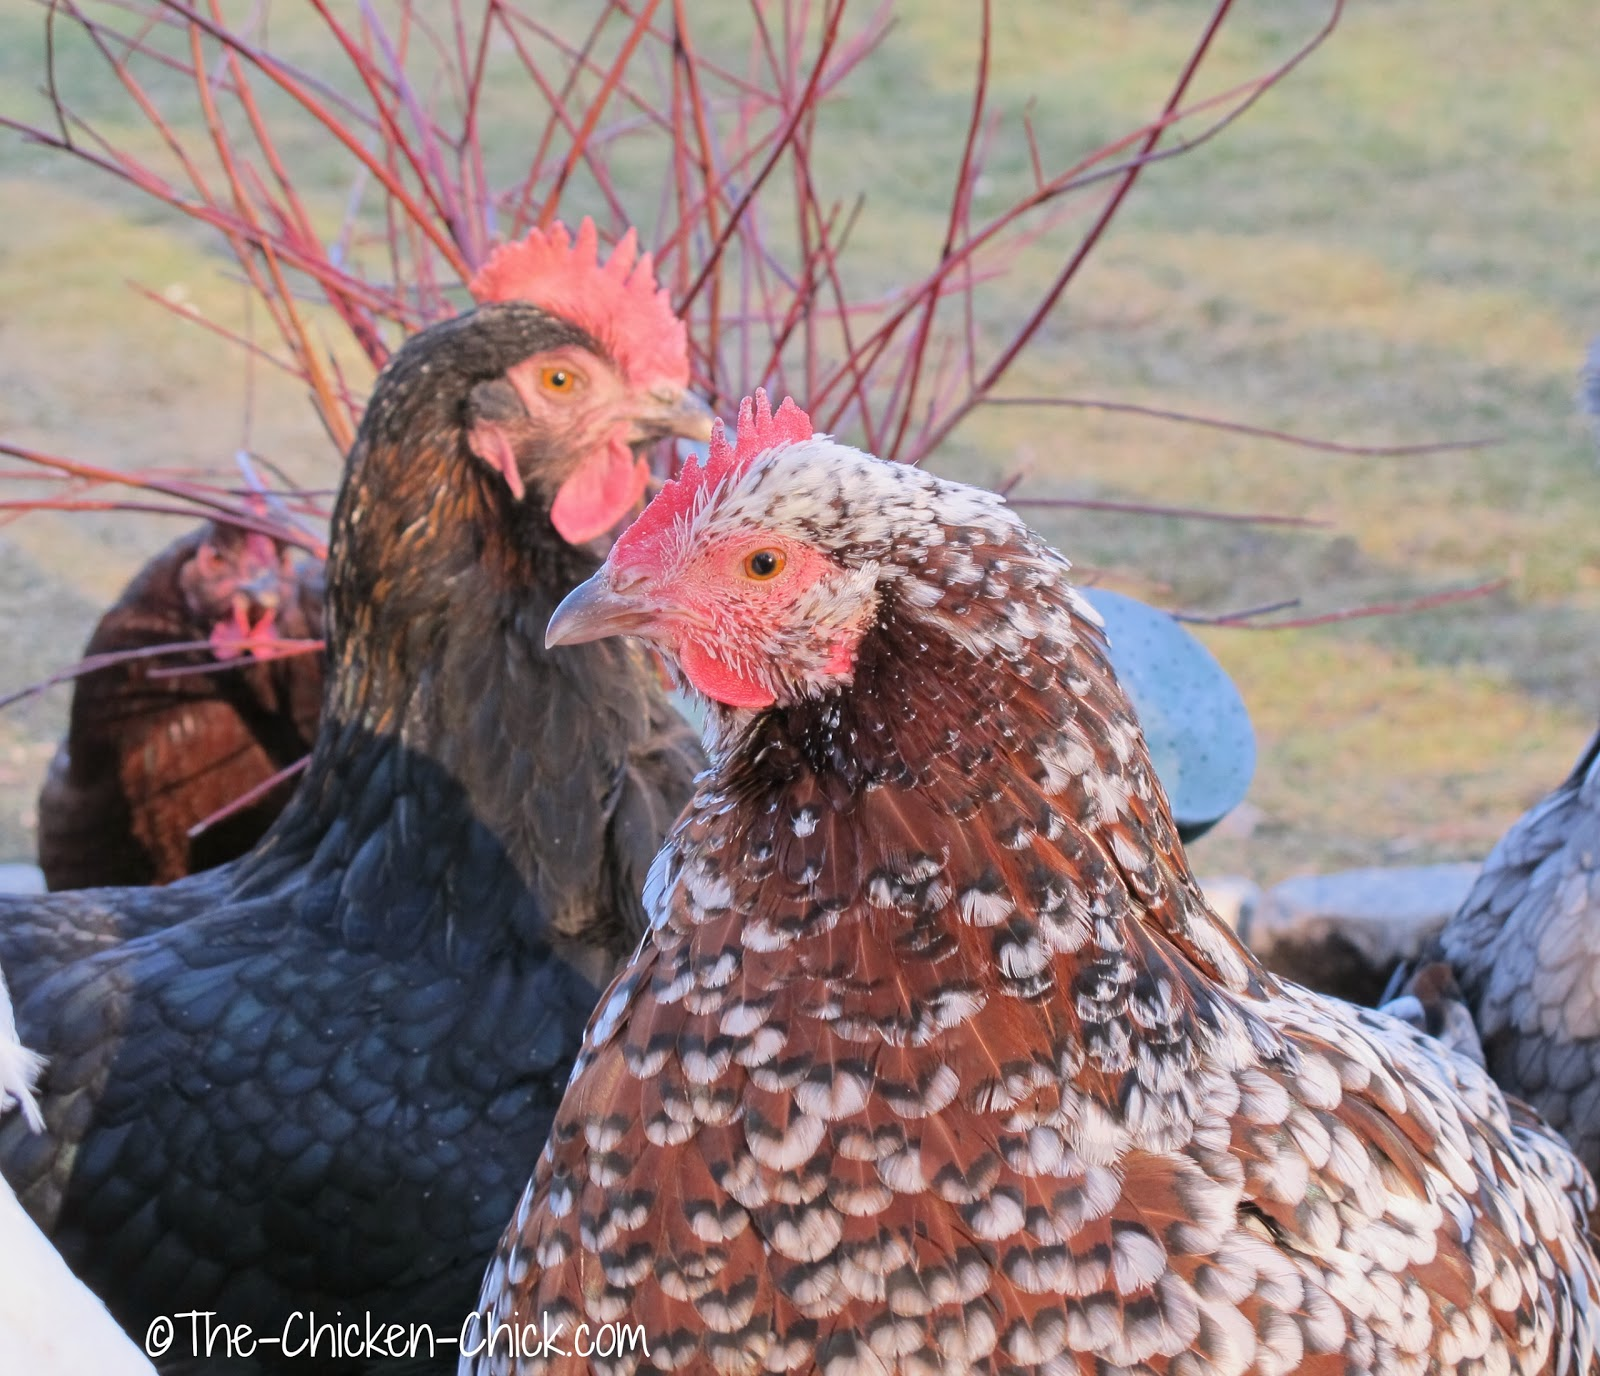 Speckled Sussex and Black Copper Marans hens